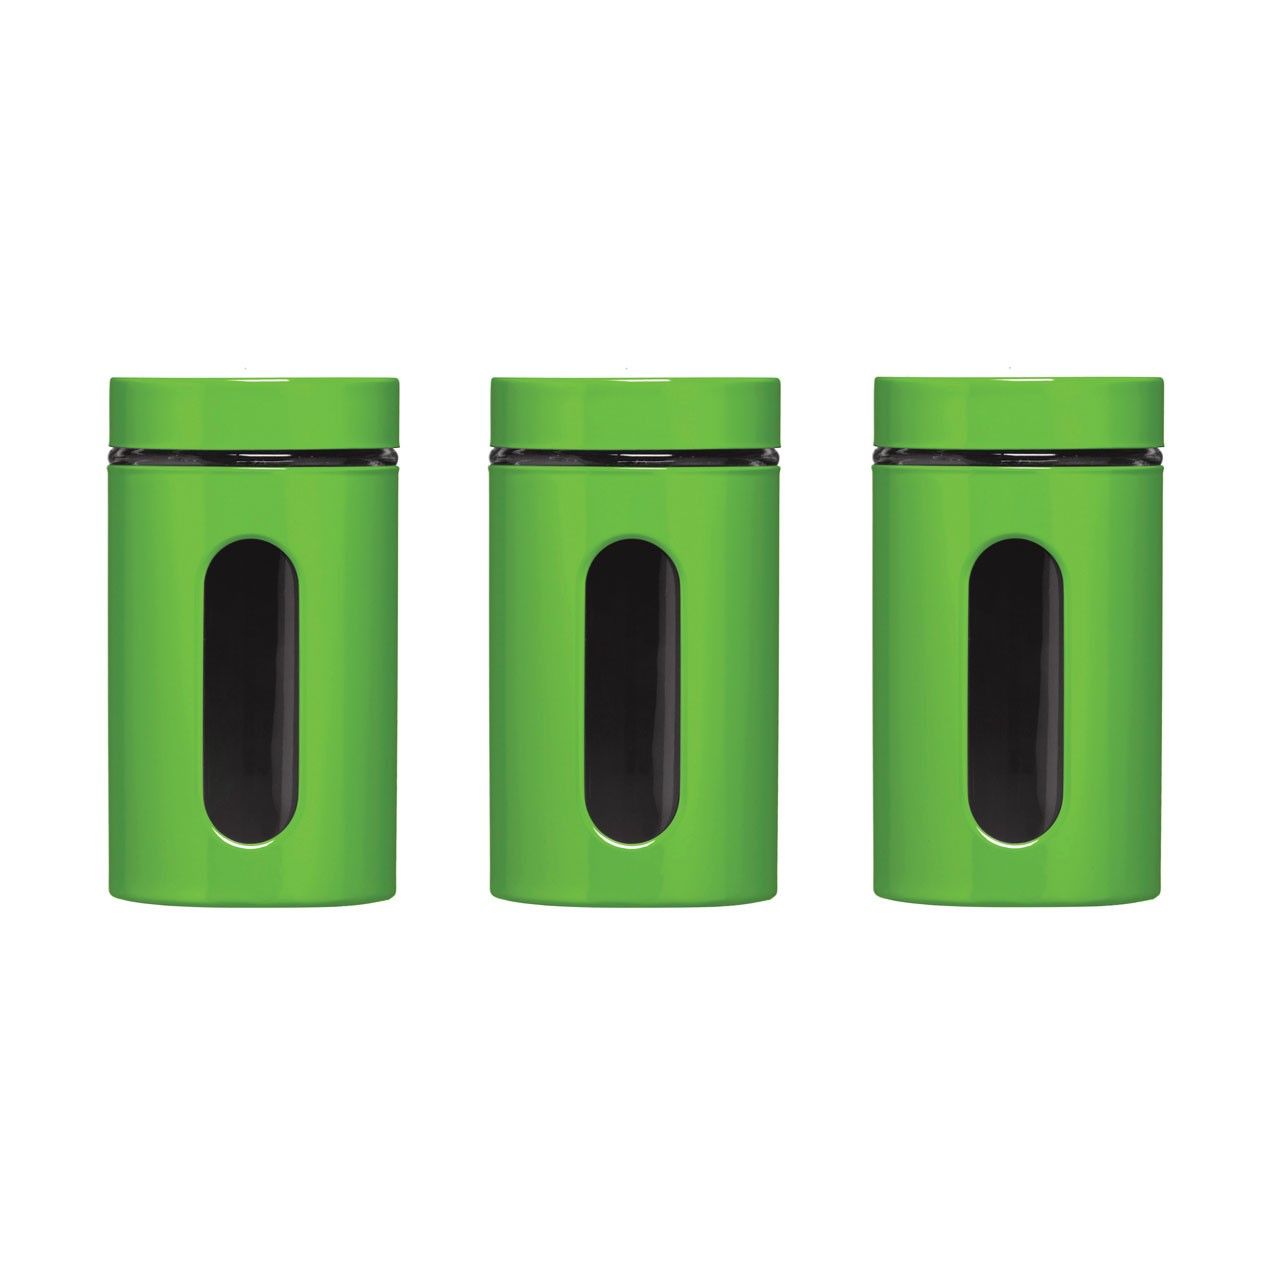 Storage Canisters - Green, Set of 3